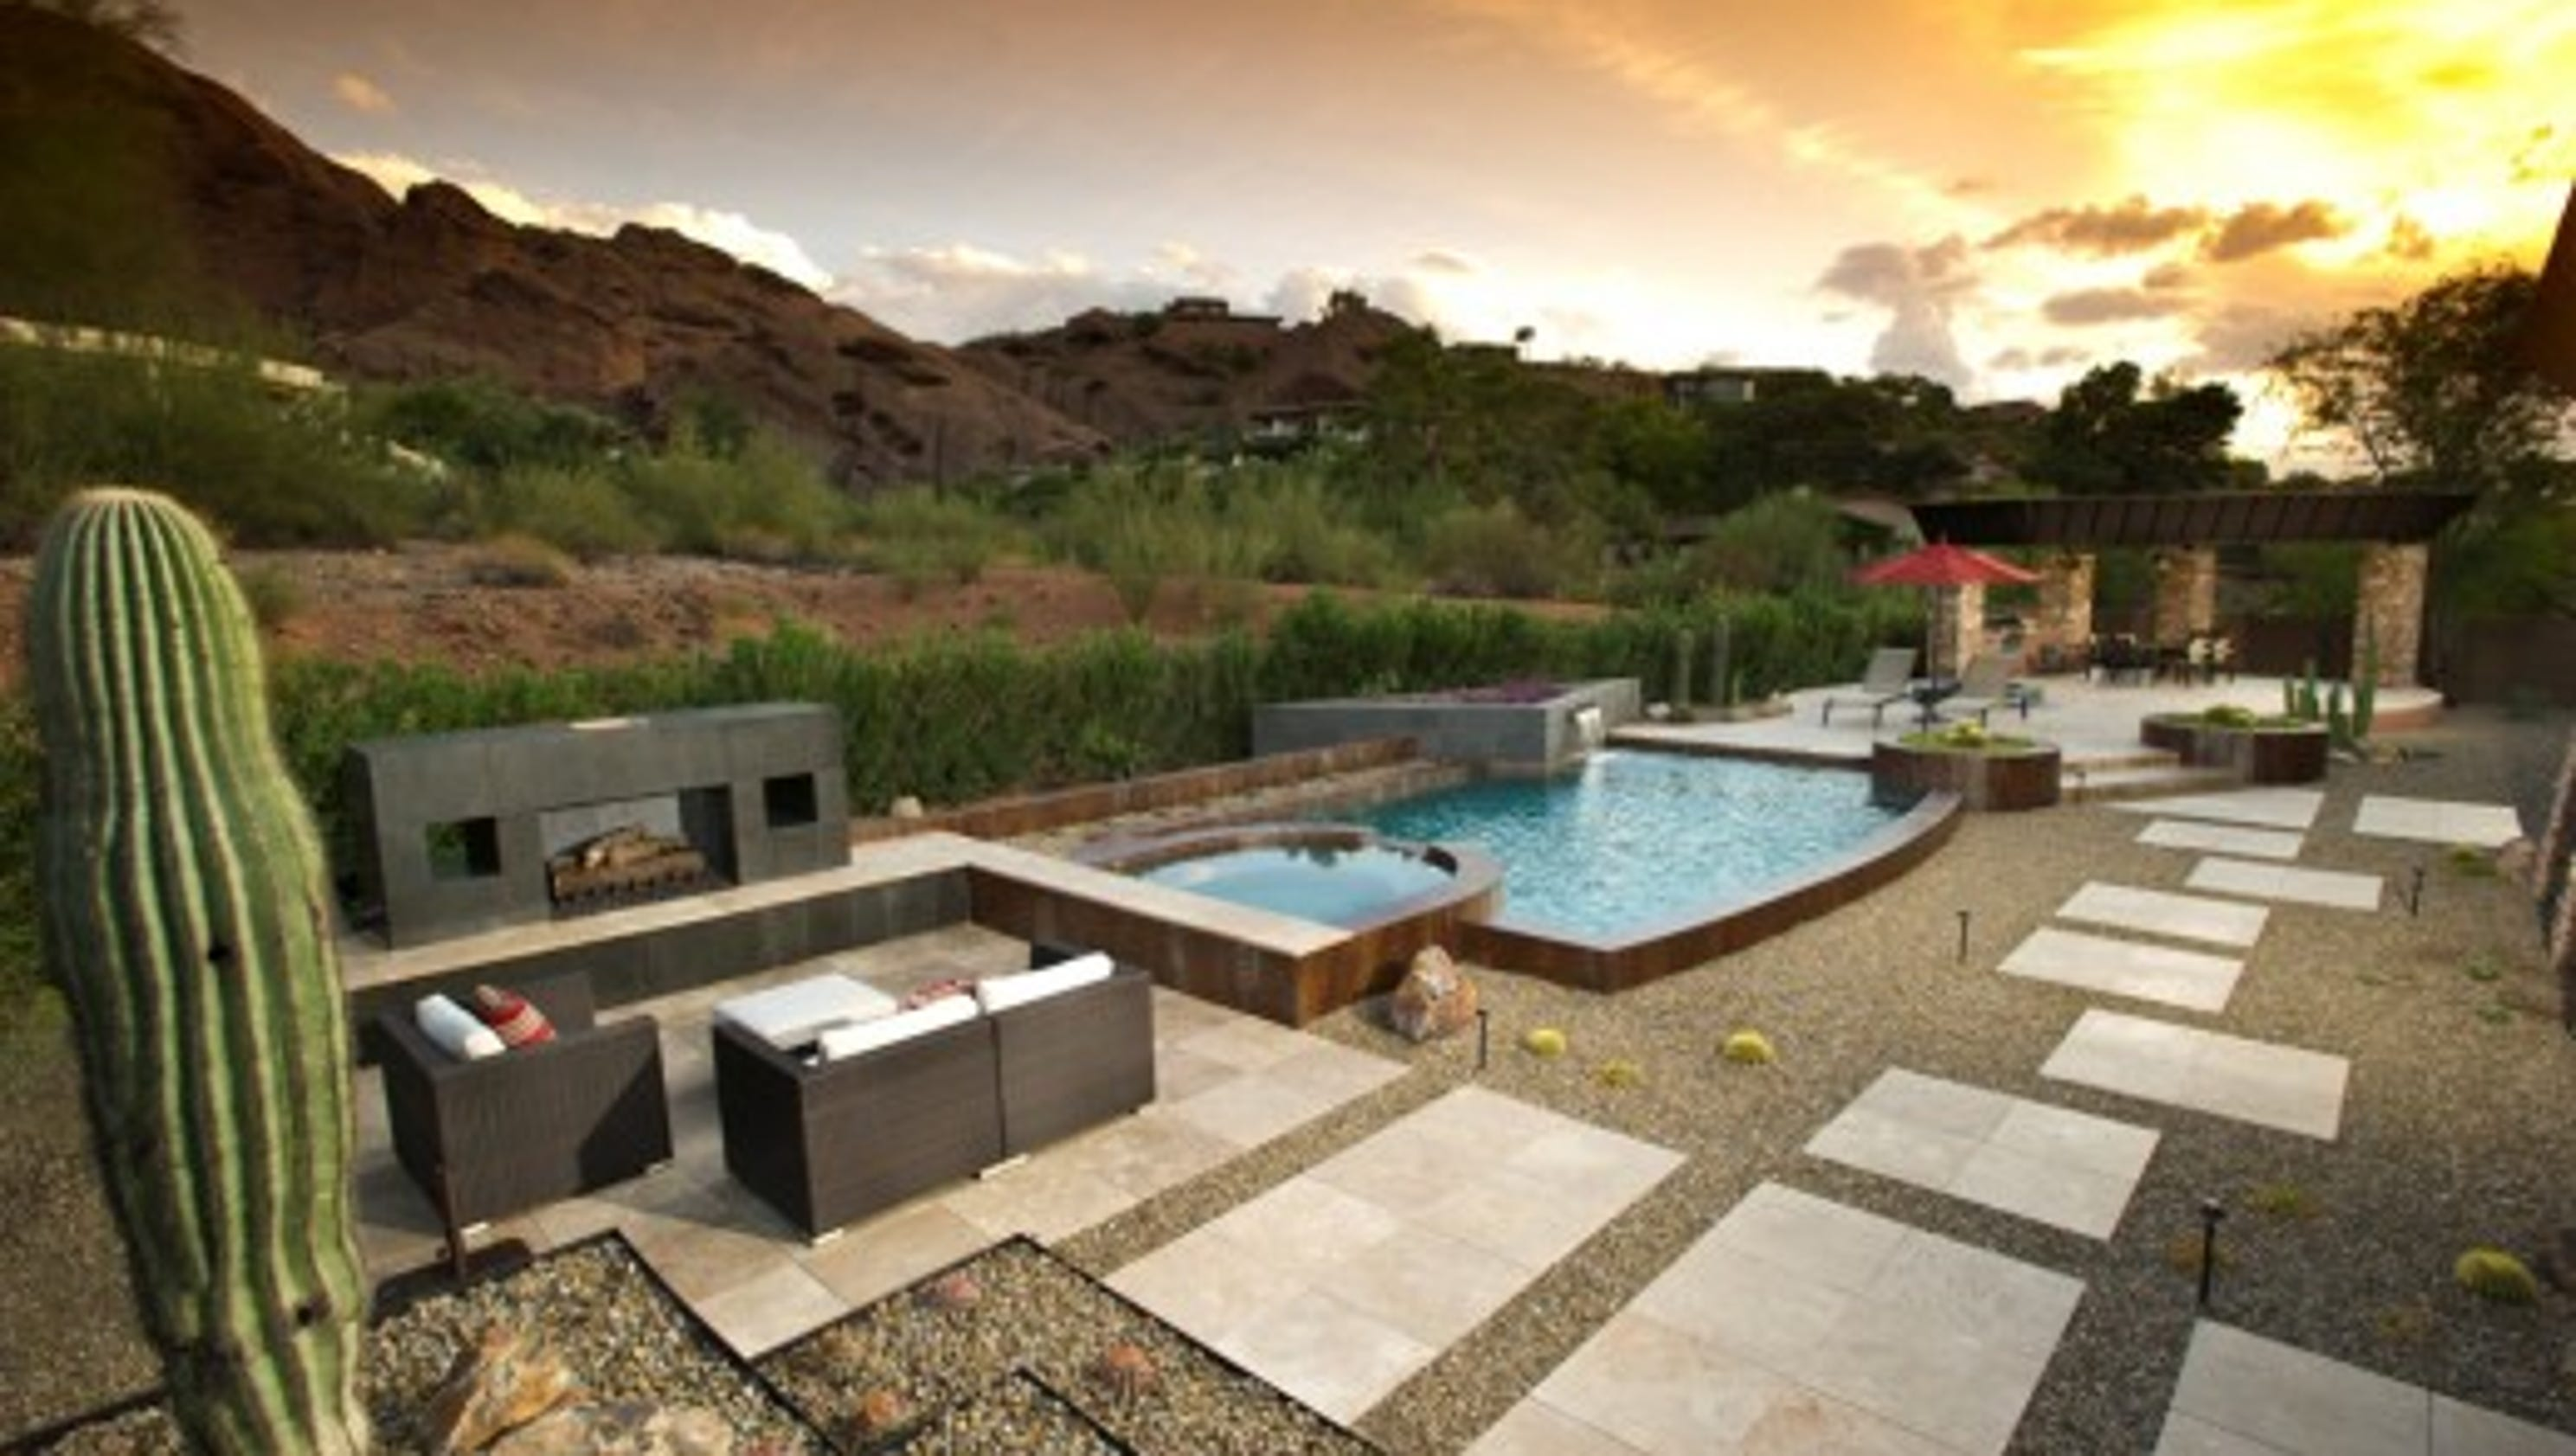 12 cheap ways to remodel your pool and 2 splurges